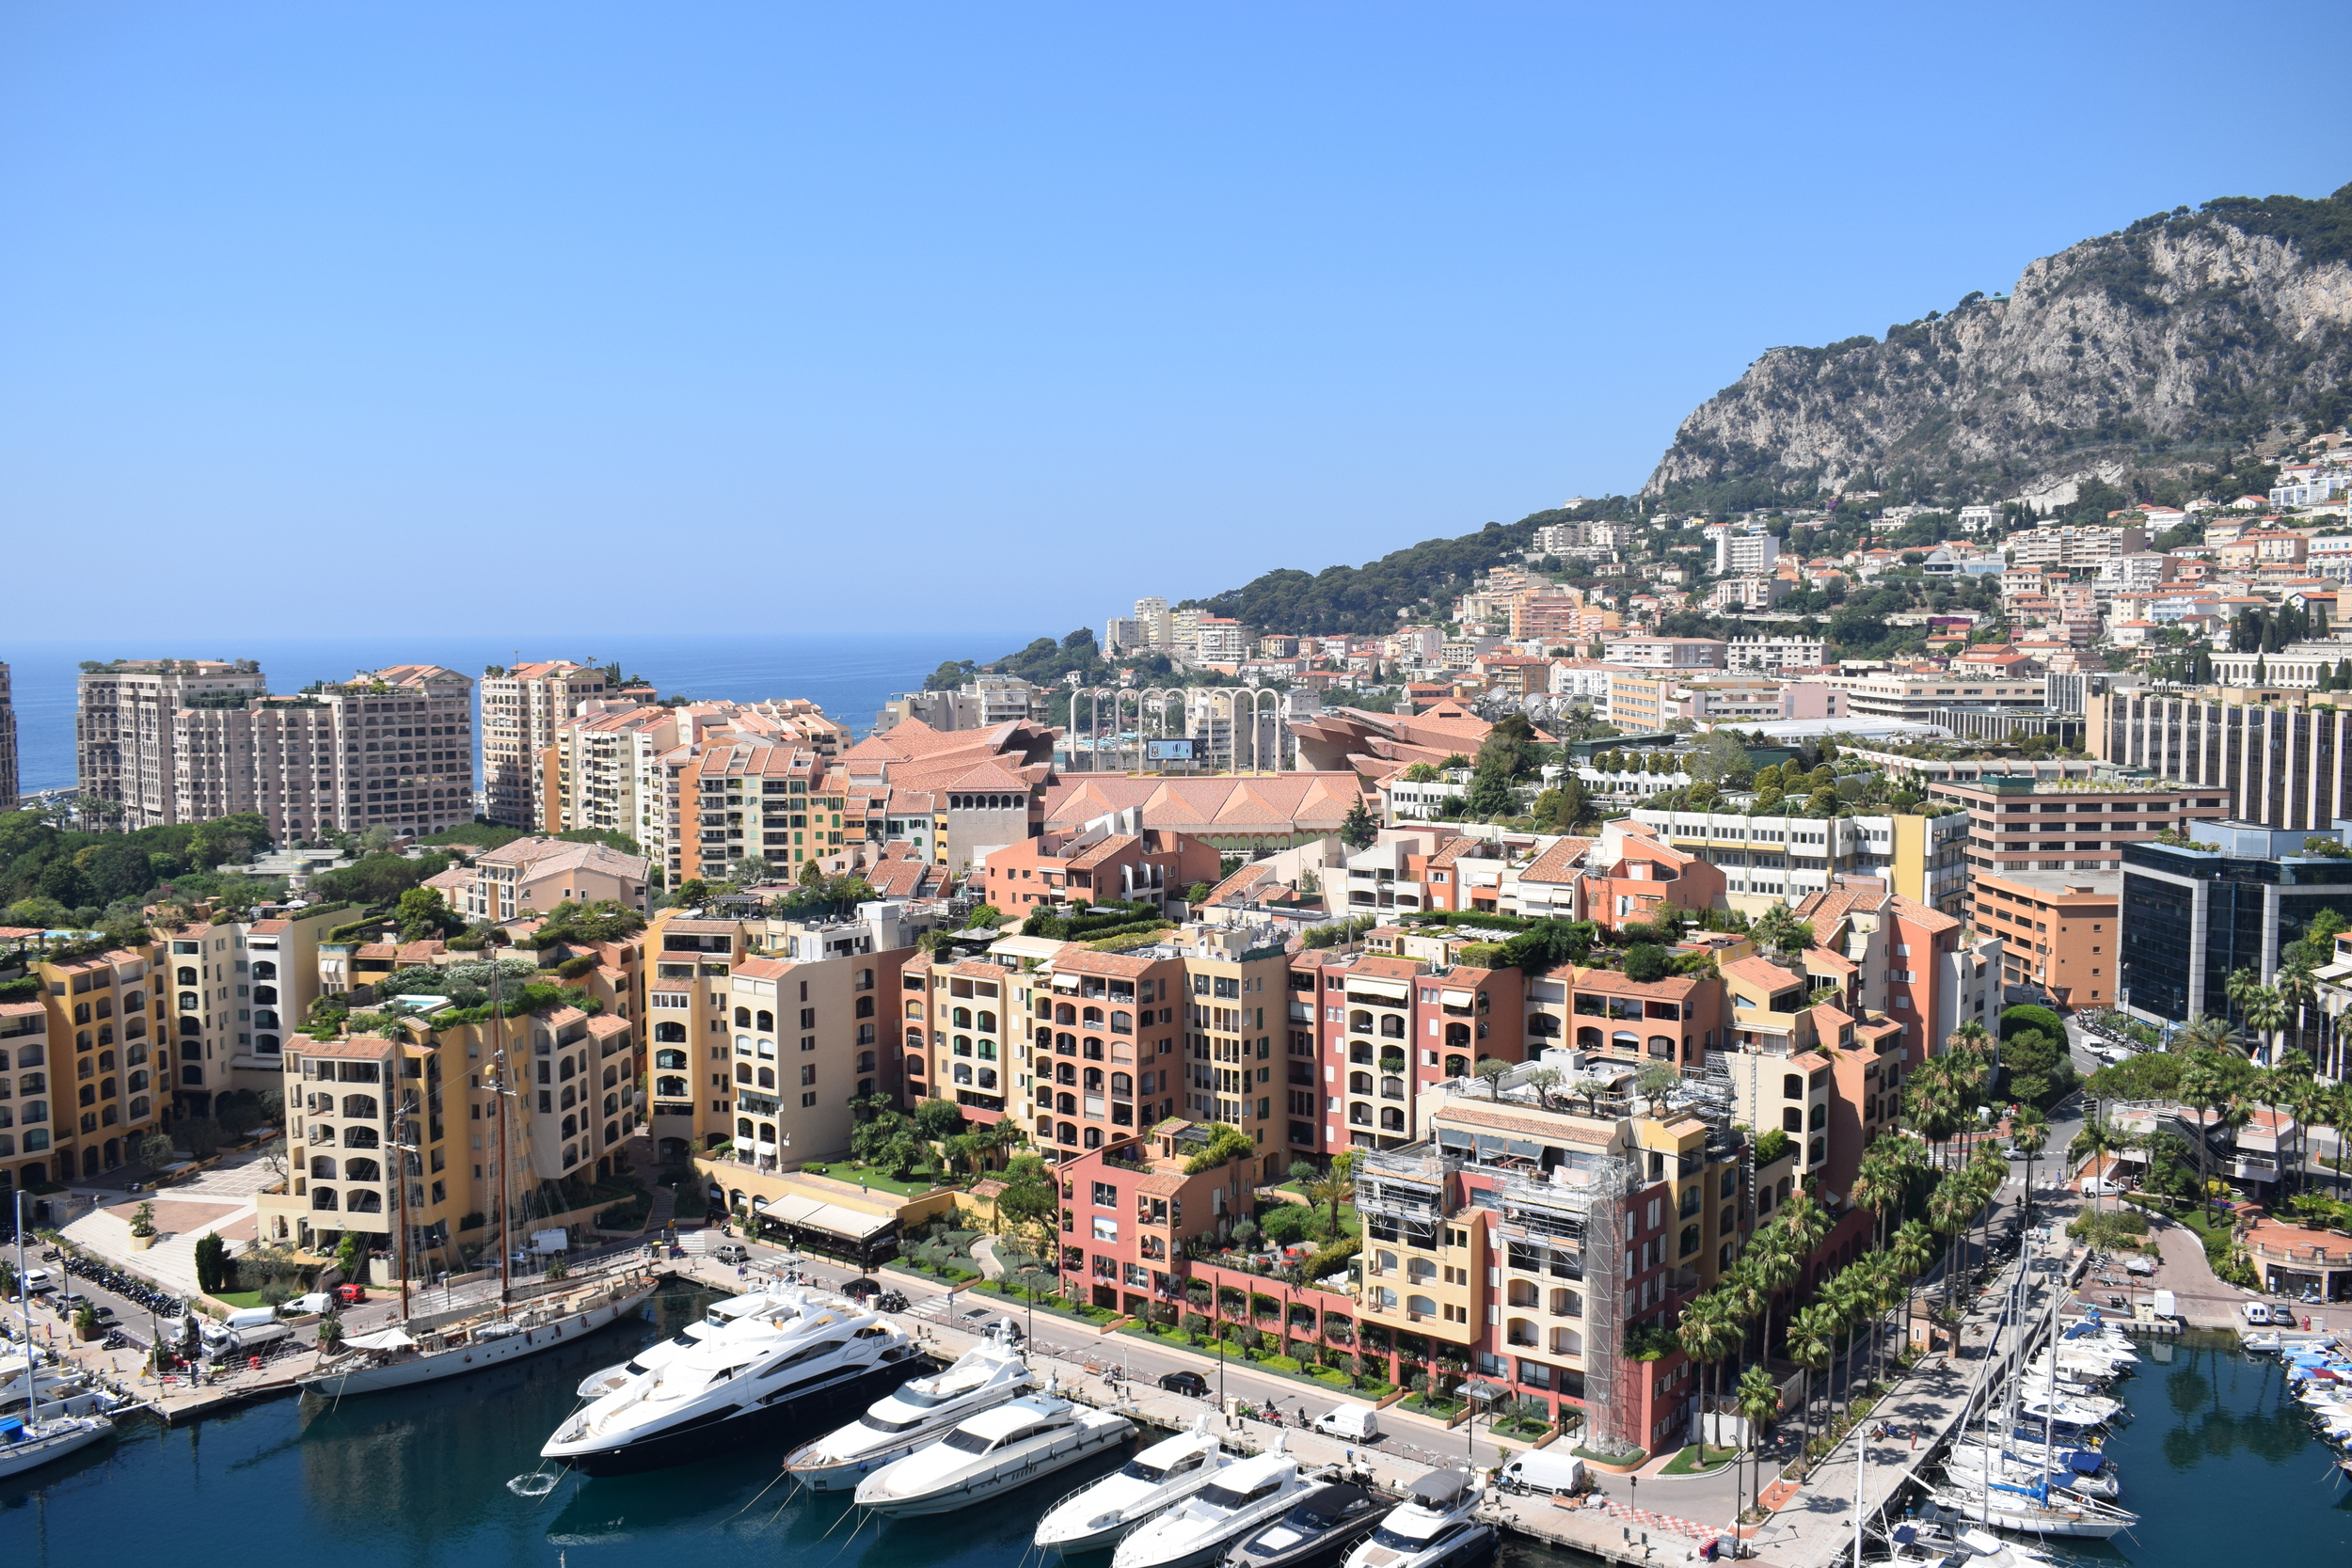 Can you spot Stade Louis II, as seen from Place du Palais?